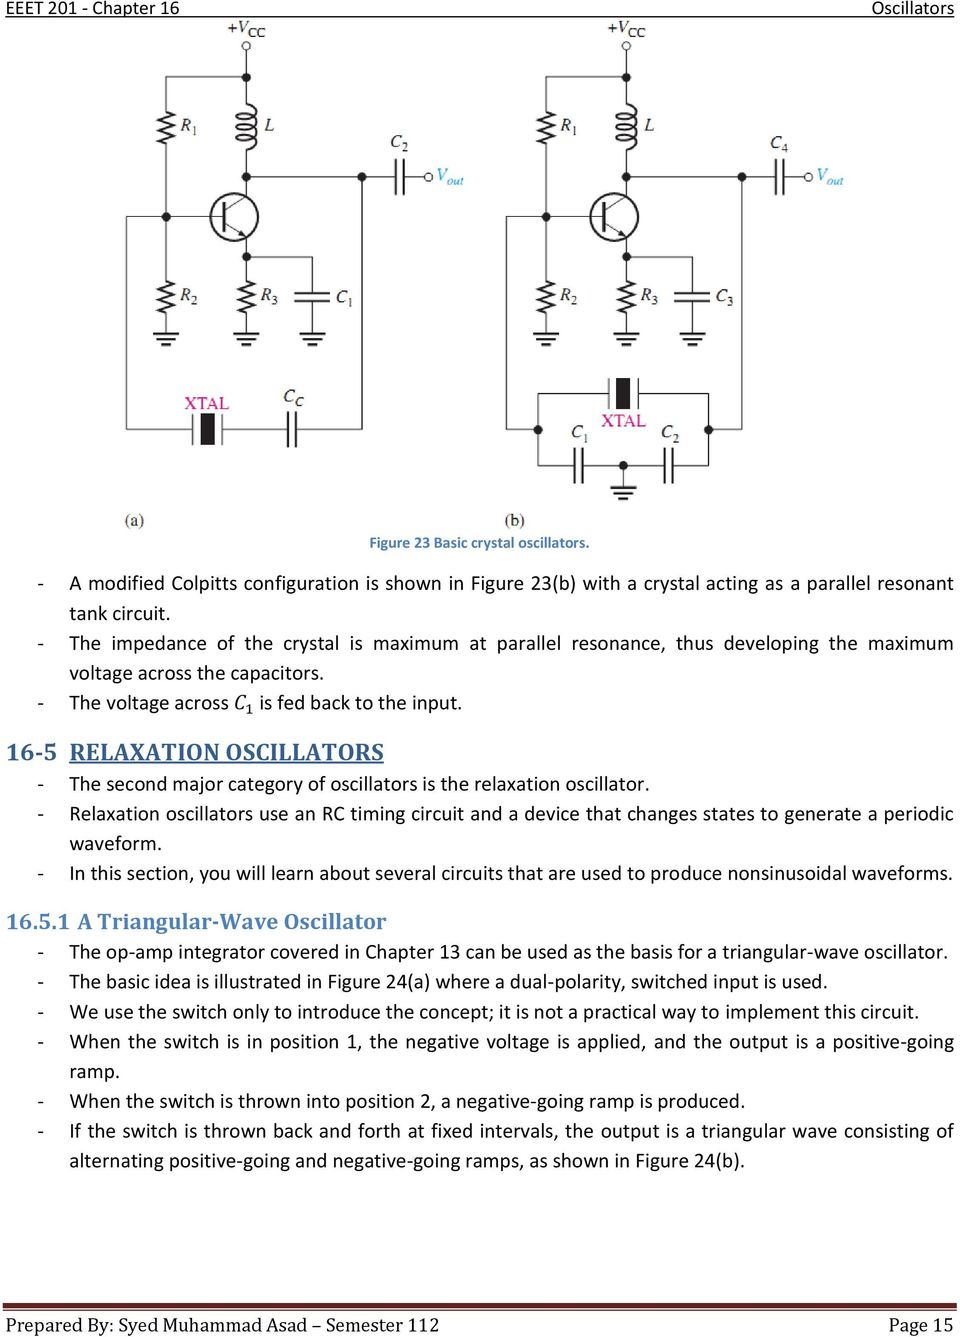 Chapter 16 Oscillators Pdf Oscillator Circuit Diagram Composed Of Crystal Inverter 5 Relaxation The Second Major Category Is